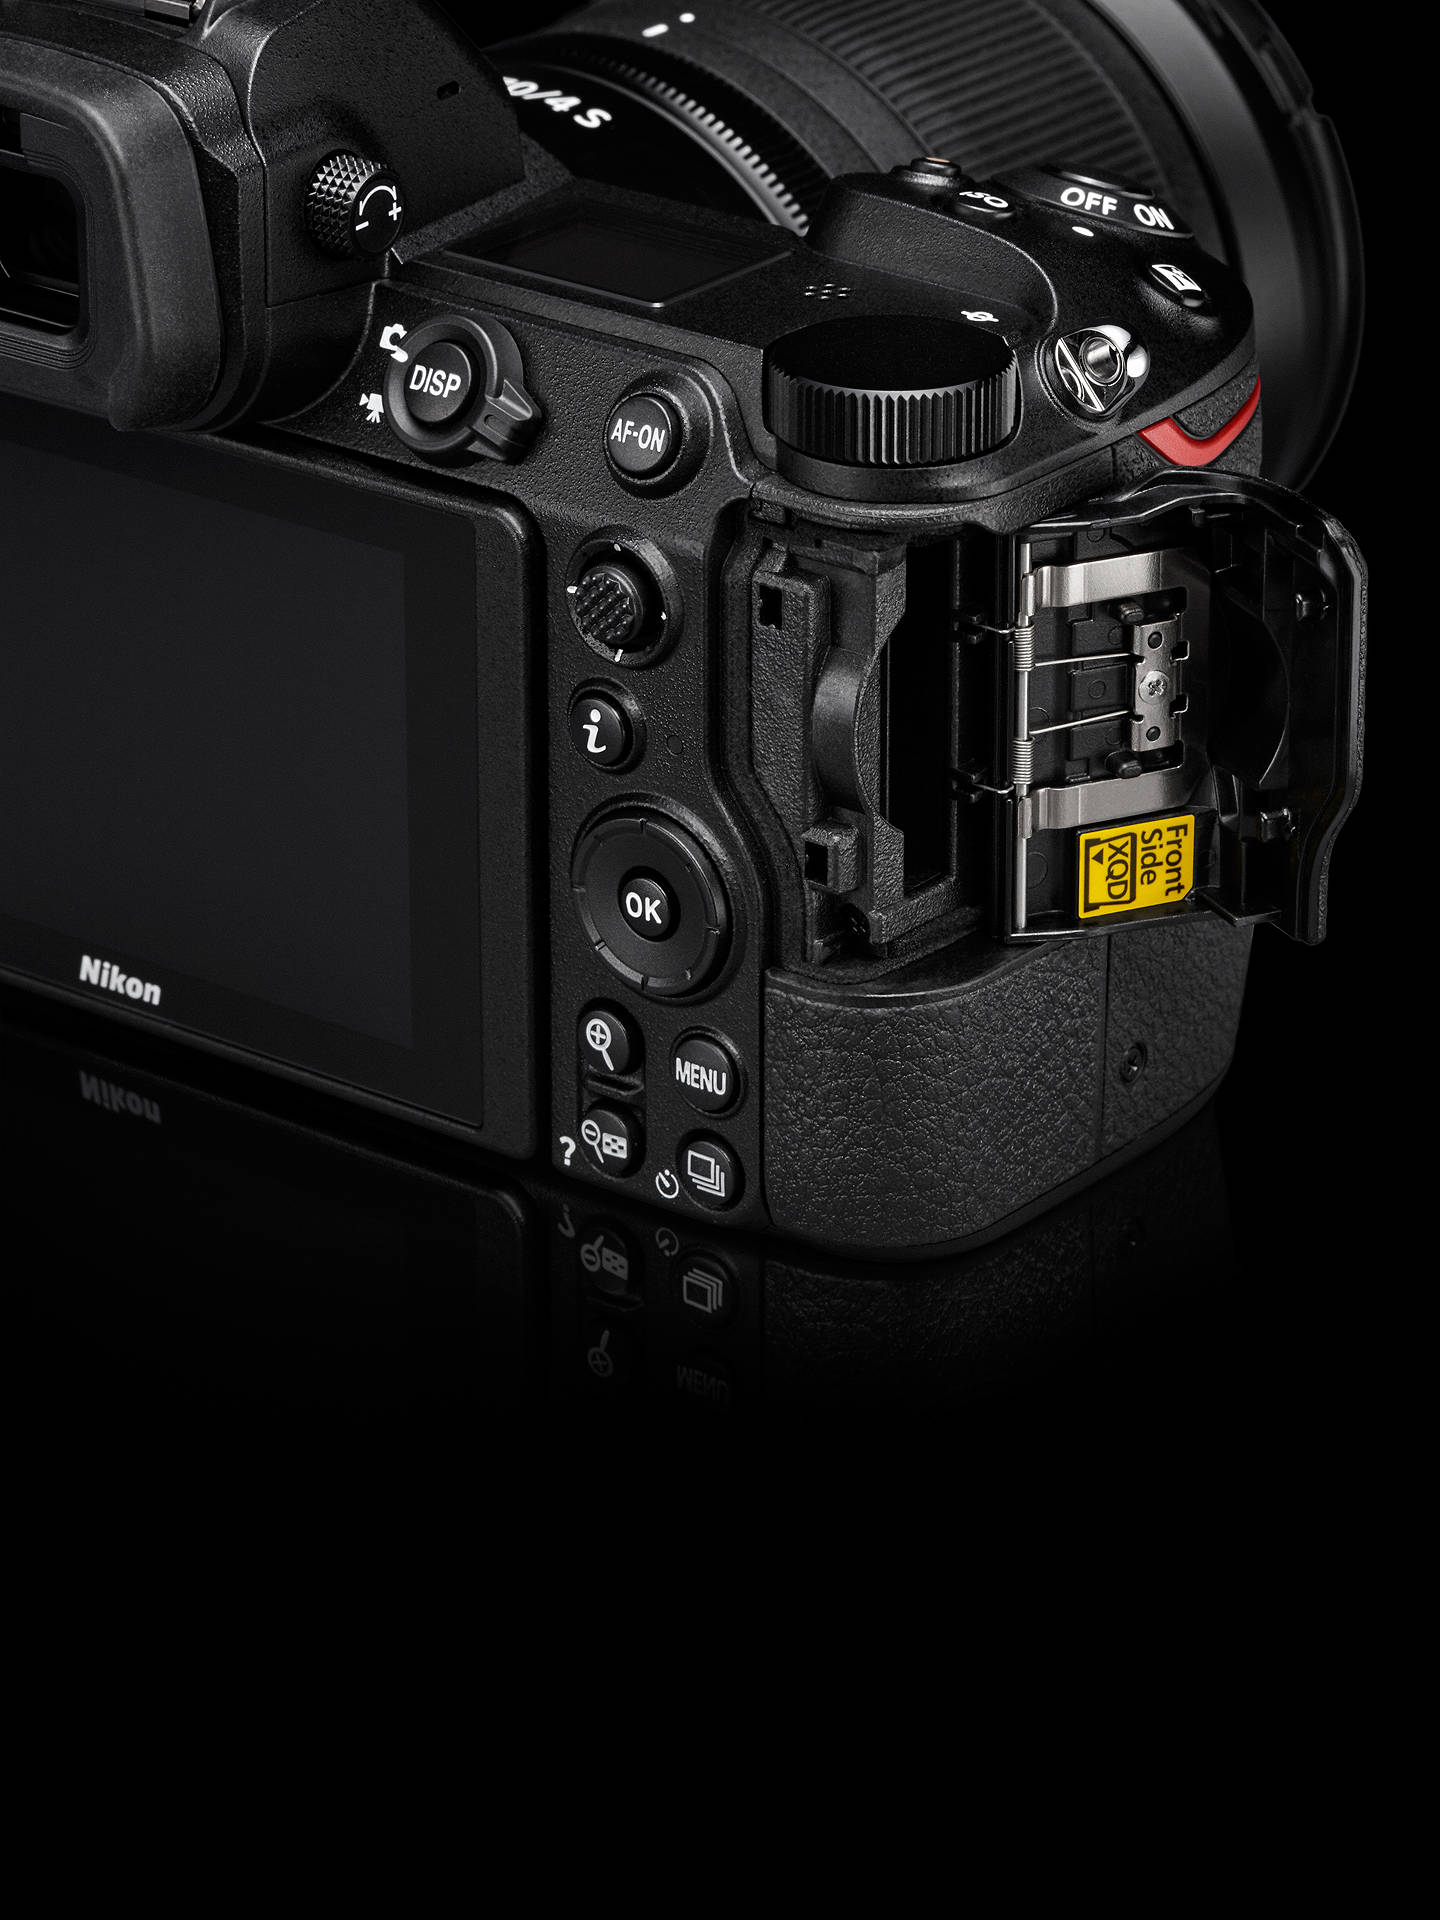 Nikon Z6 Compact System Camera with 24-70mm Lens, 4K UHD, 24 5MP, Wi-Fi,  Bluetooth, OLED EVF, 3 2